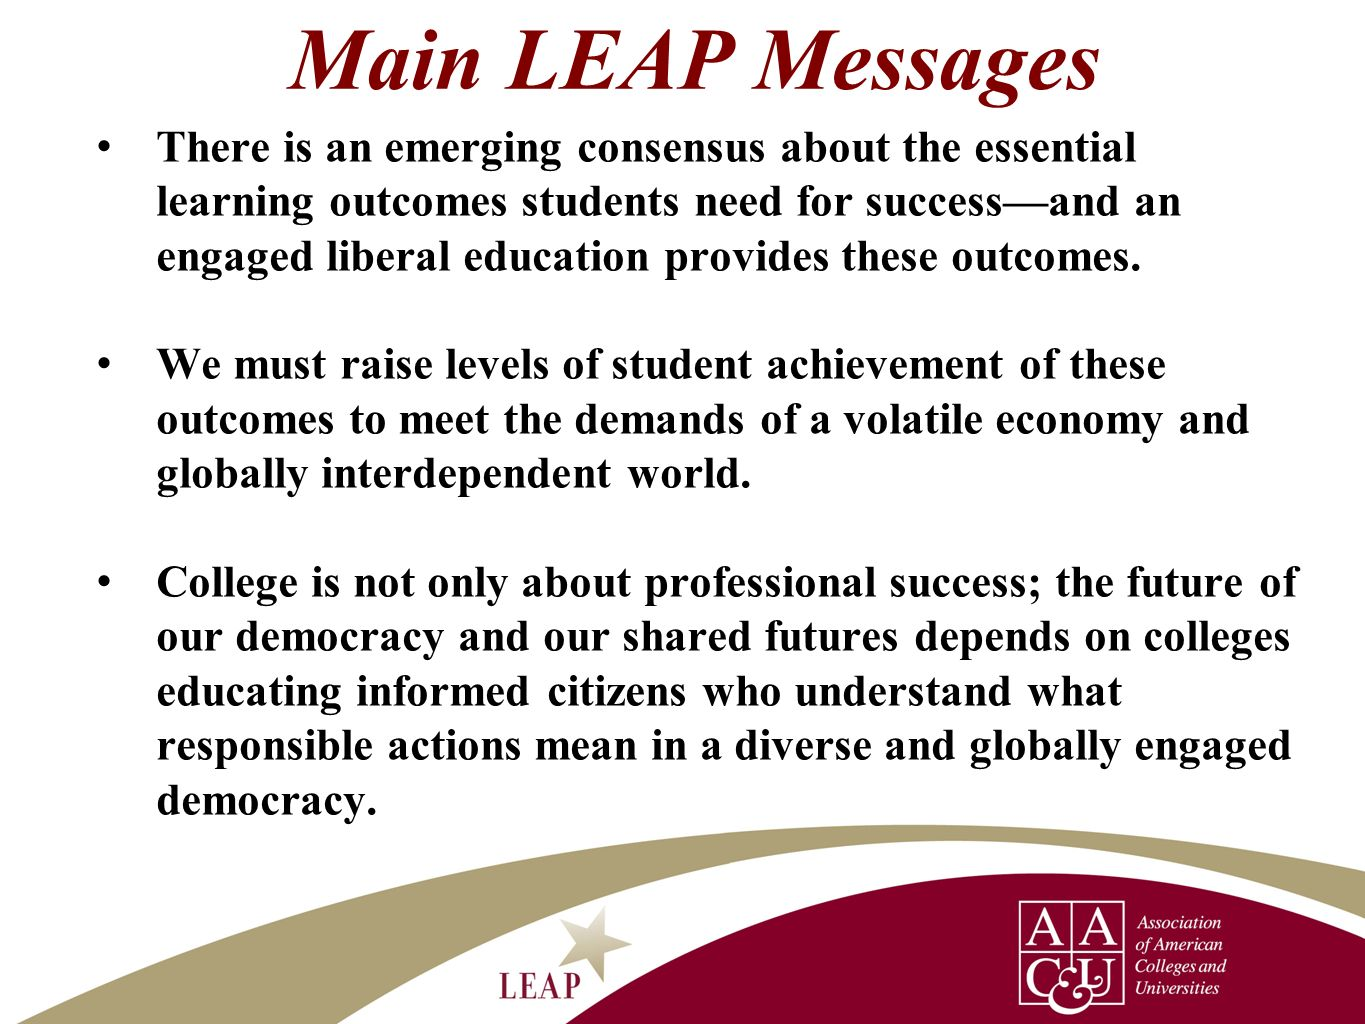 Main LEAP Messages There is an emerging consensus about the essential learning outcomes students need for successand an engaged liberal education prov